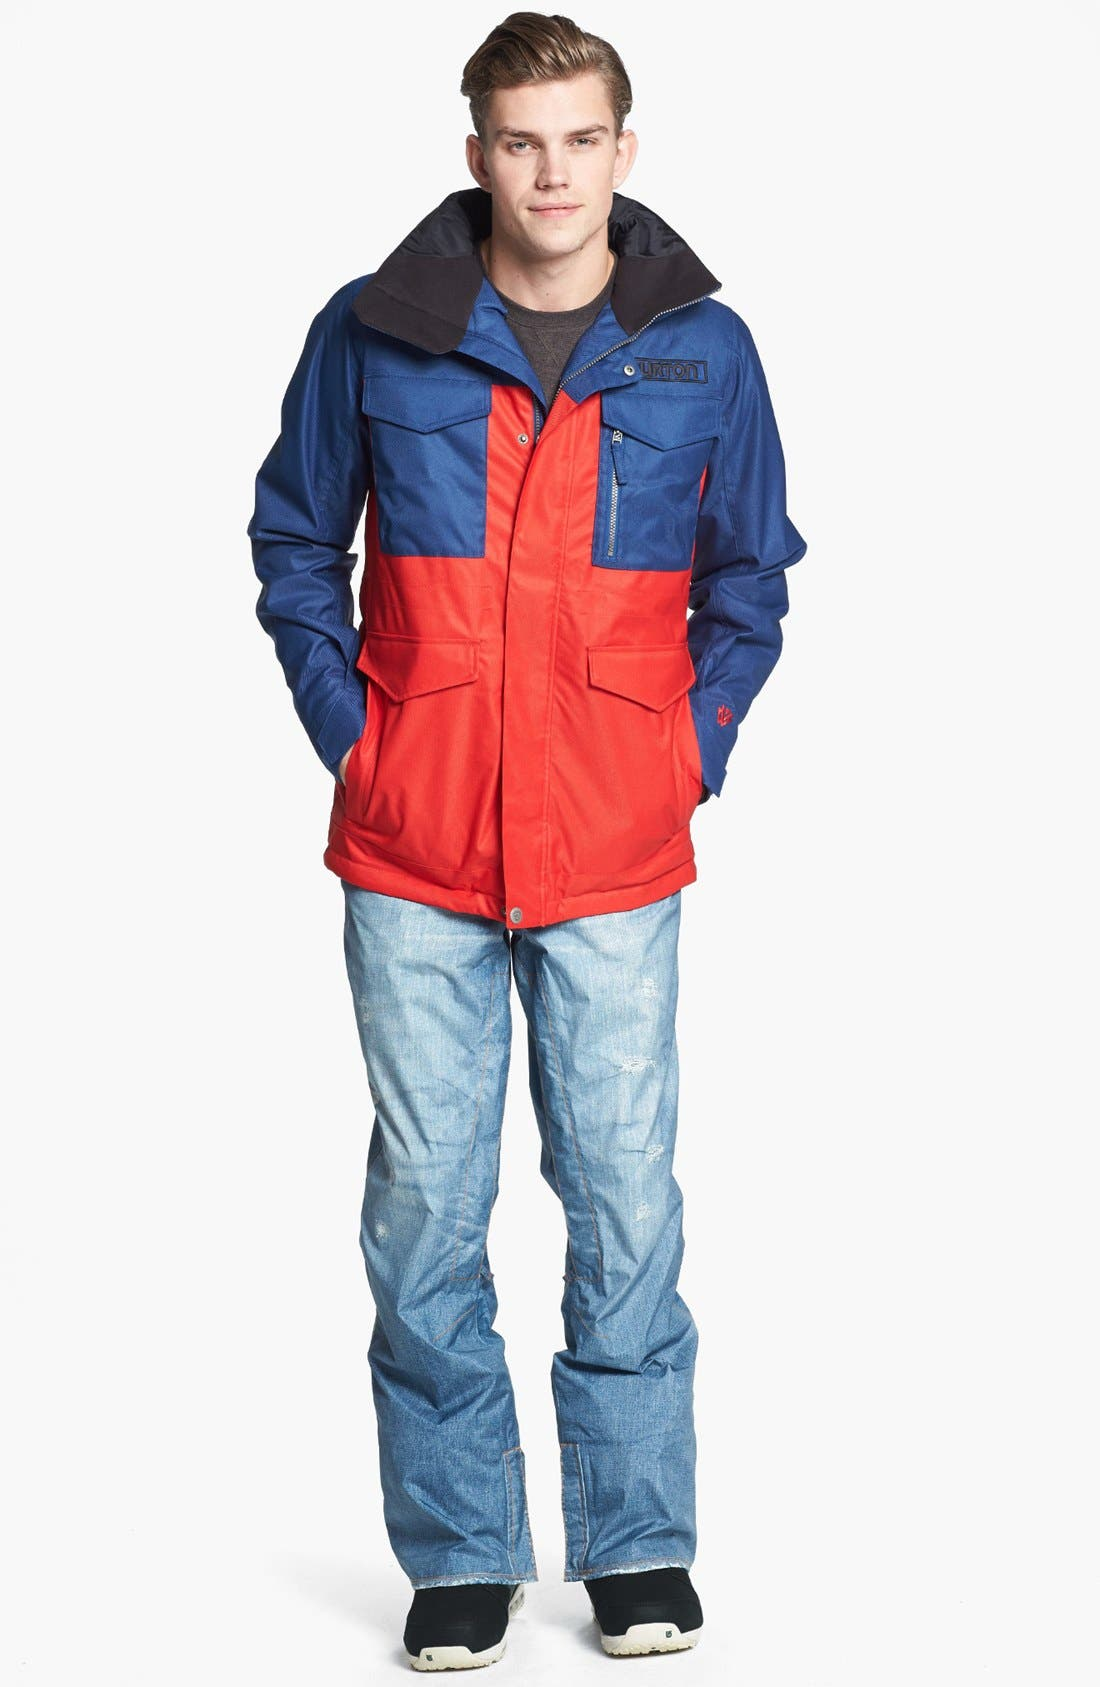 BURTON,                             'The White Collection - Cannon' Waterproof Jacket,                             Alternate thumbnail 3, color,                             414